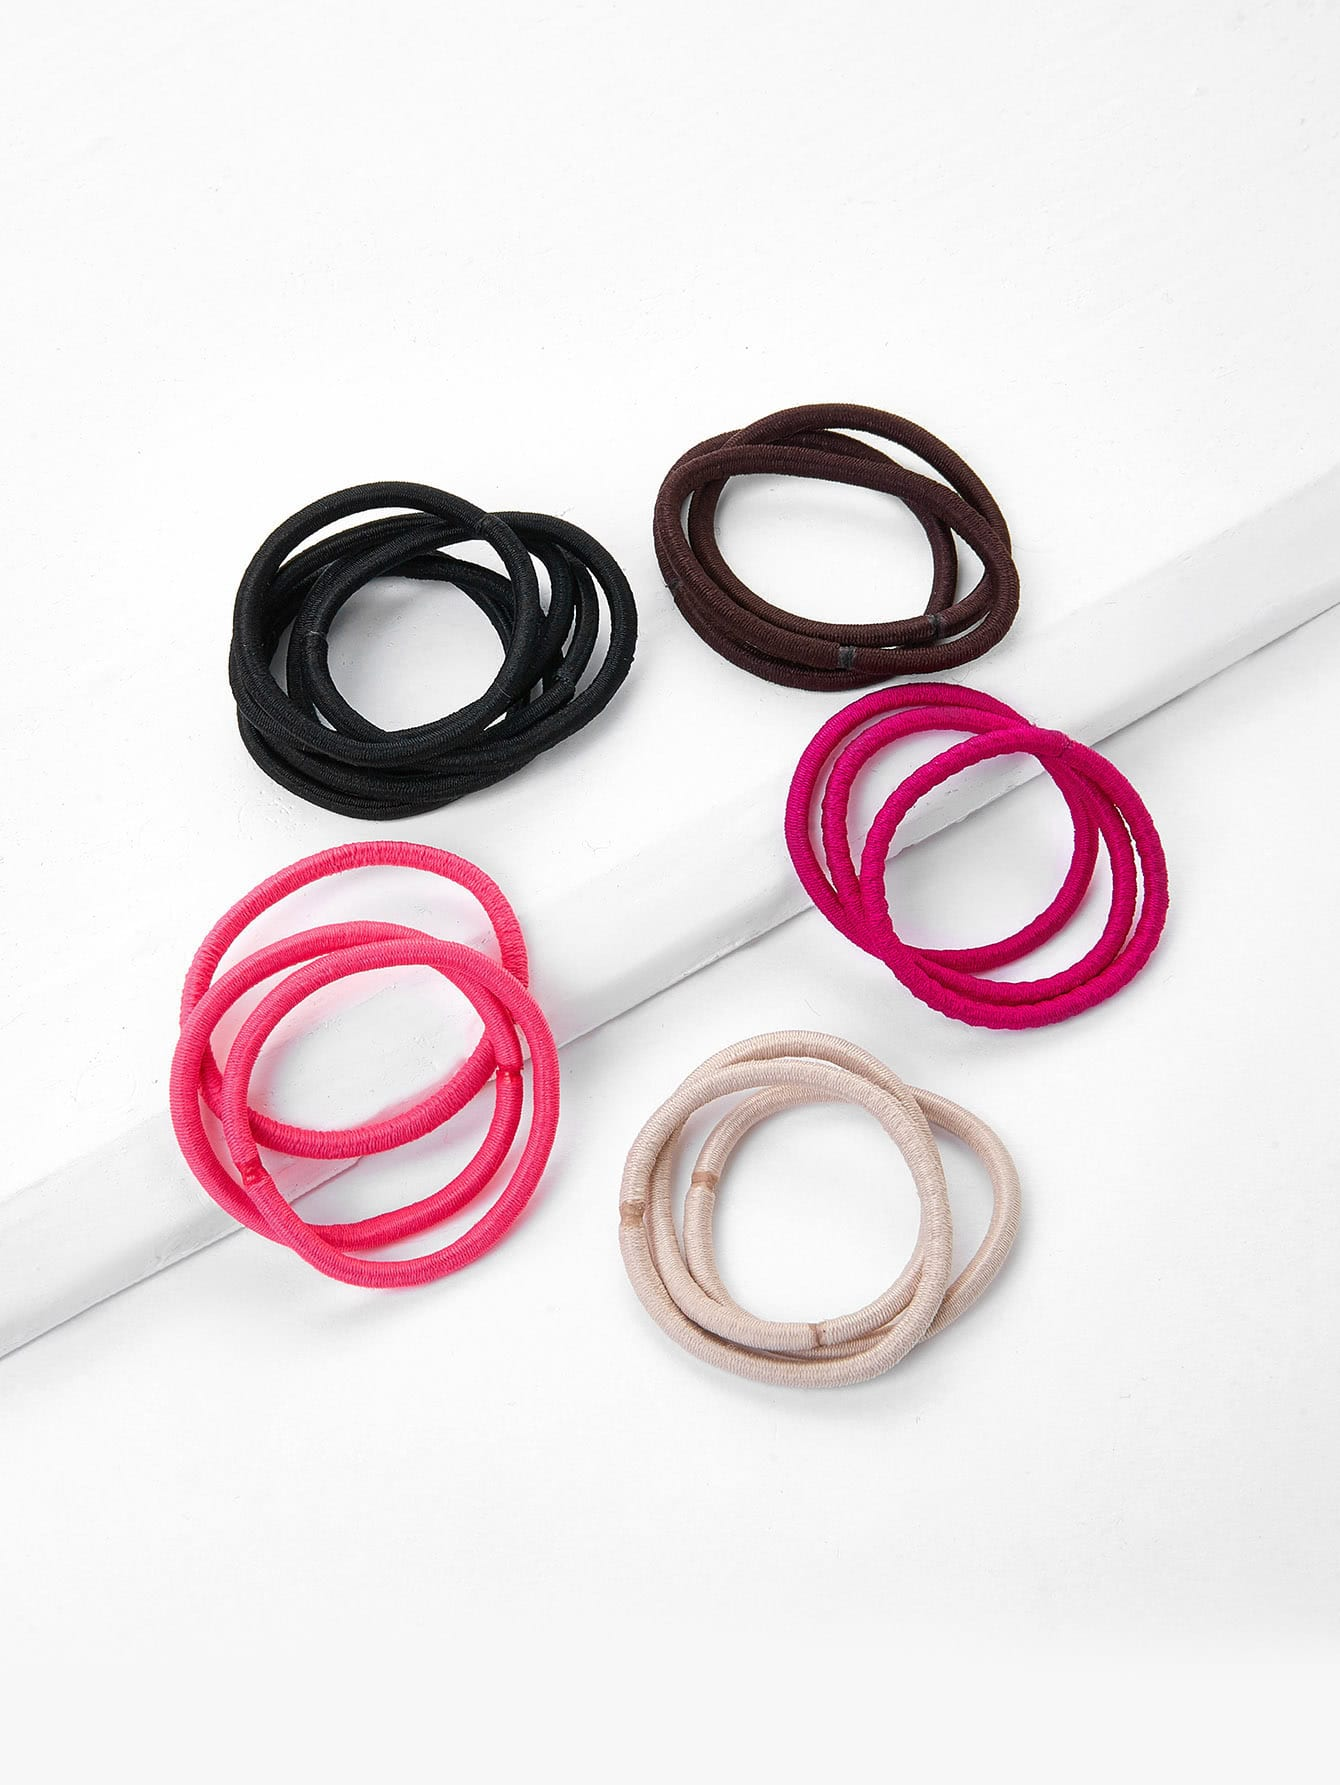 Image of 5 Color Hair Tie Set 18pcs